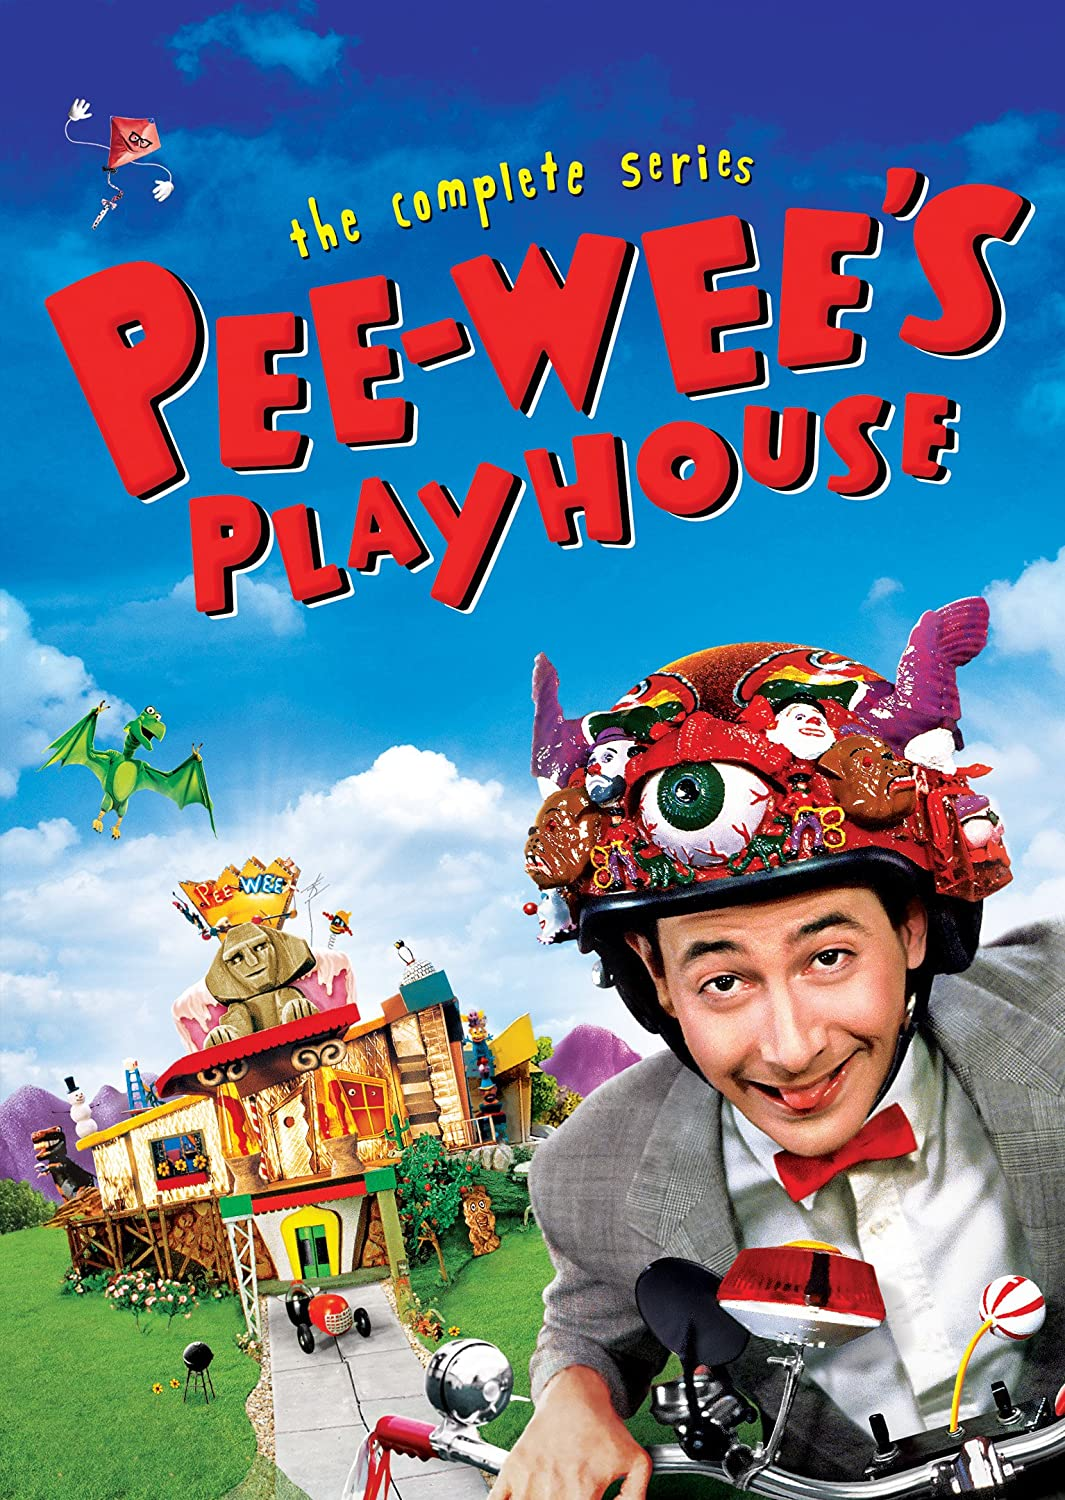 Pee-Wee's Playhouse: The Complete Series: Amazon.co.uk: DVD & Blu-ray